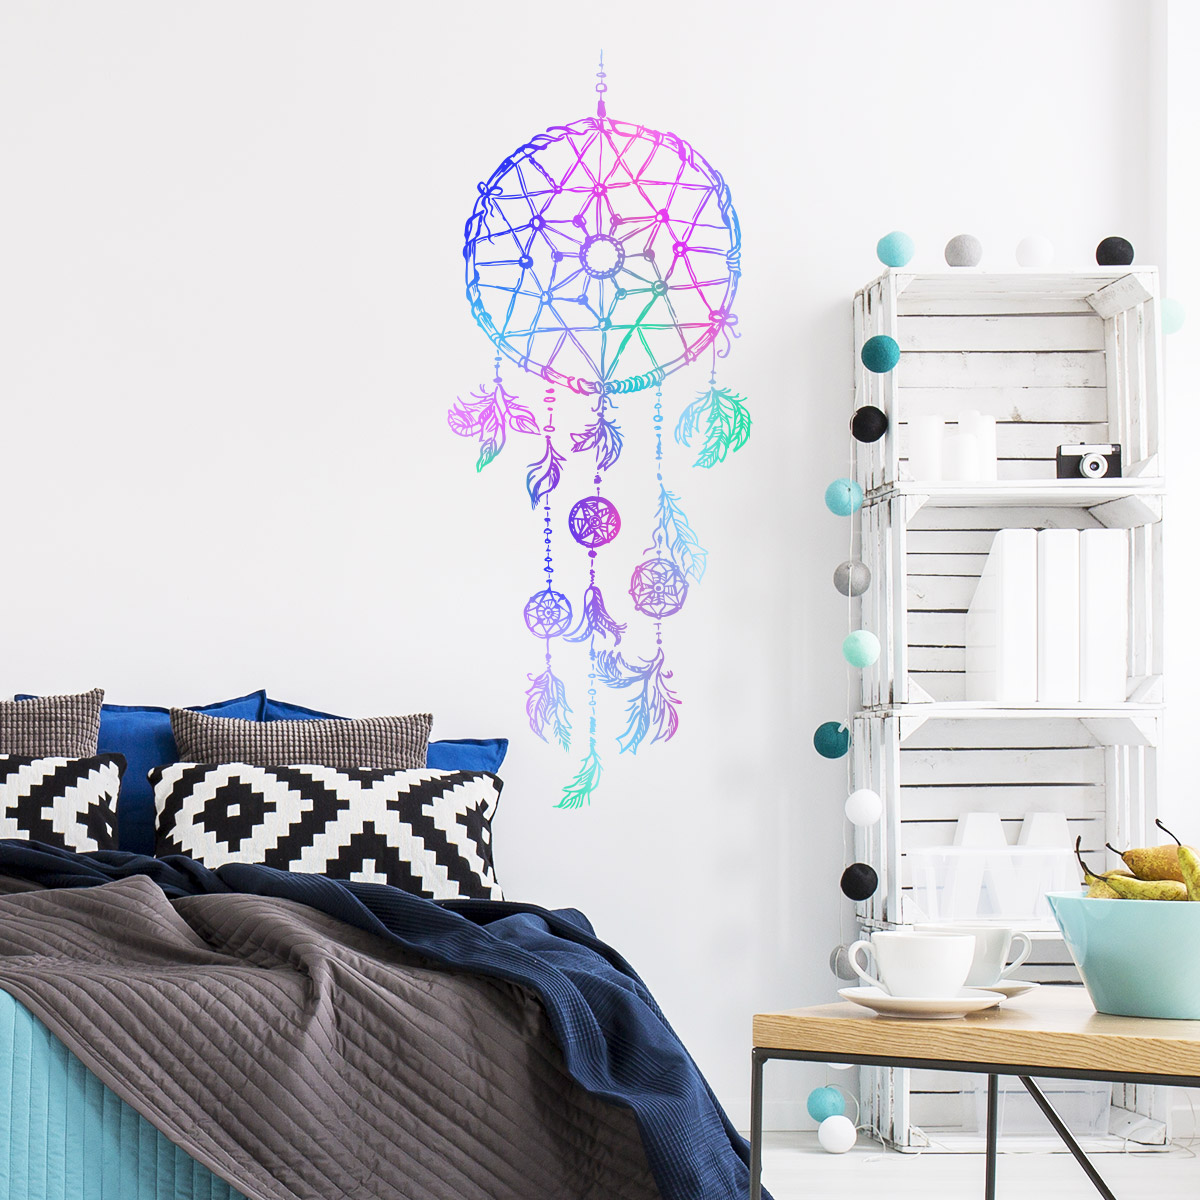 Idee Deco Chambre Garcon Super Heros wall decal boho dream catcher star